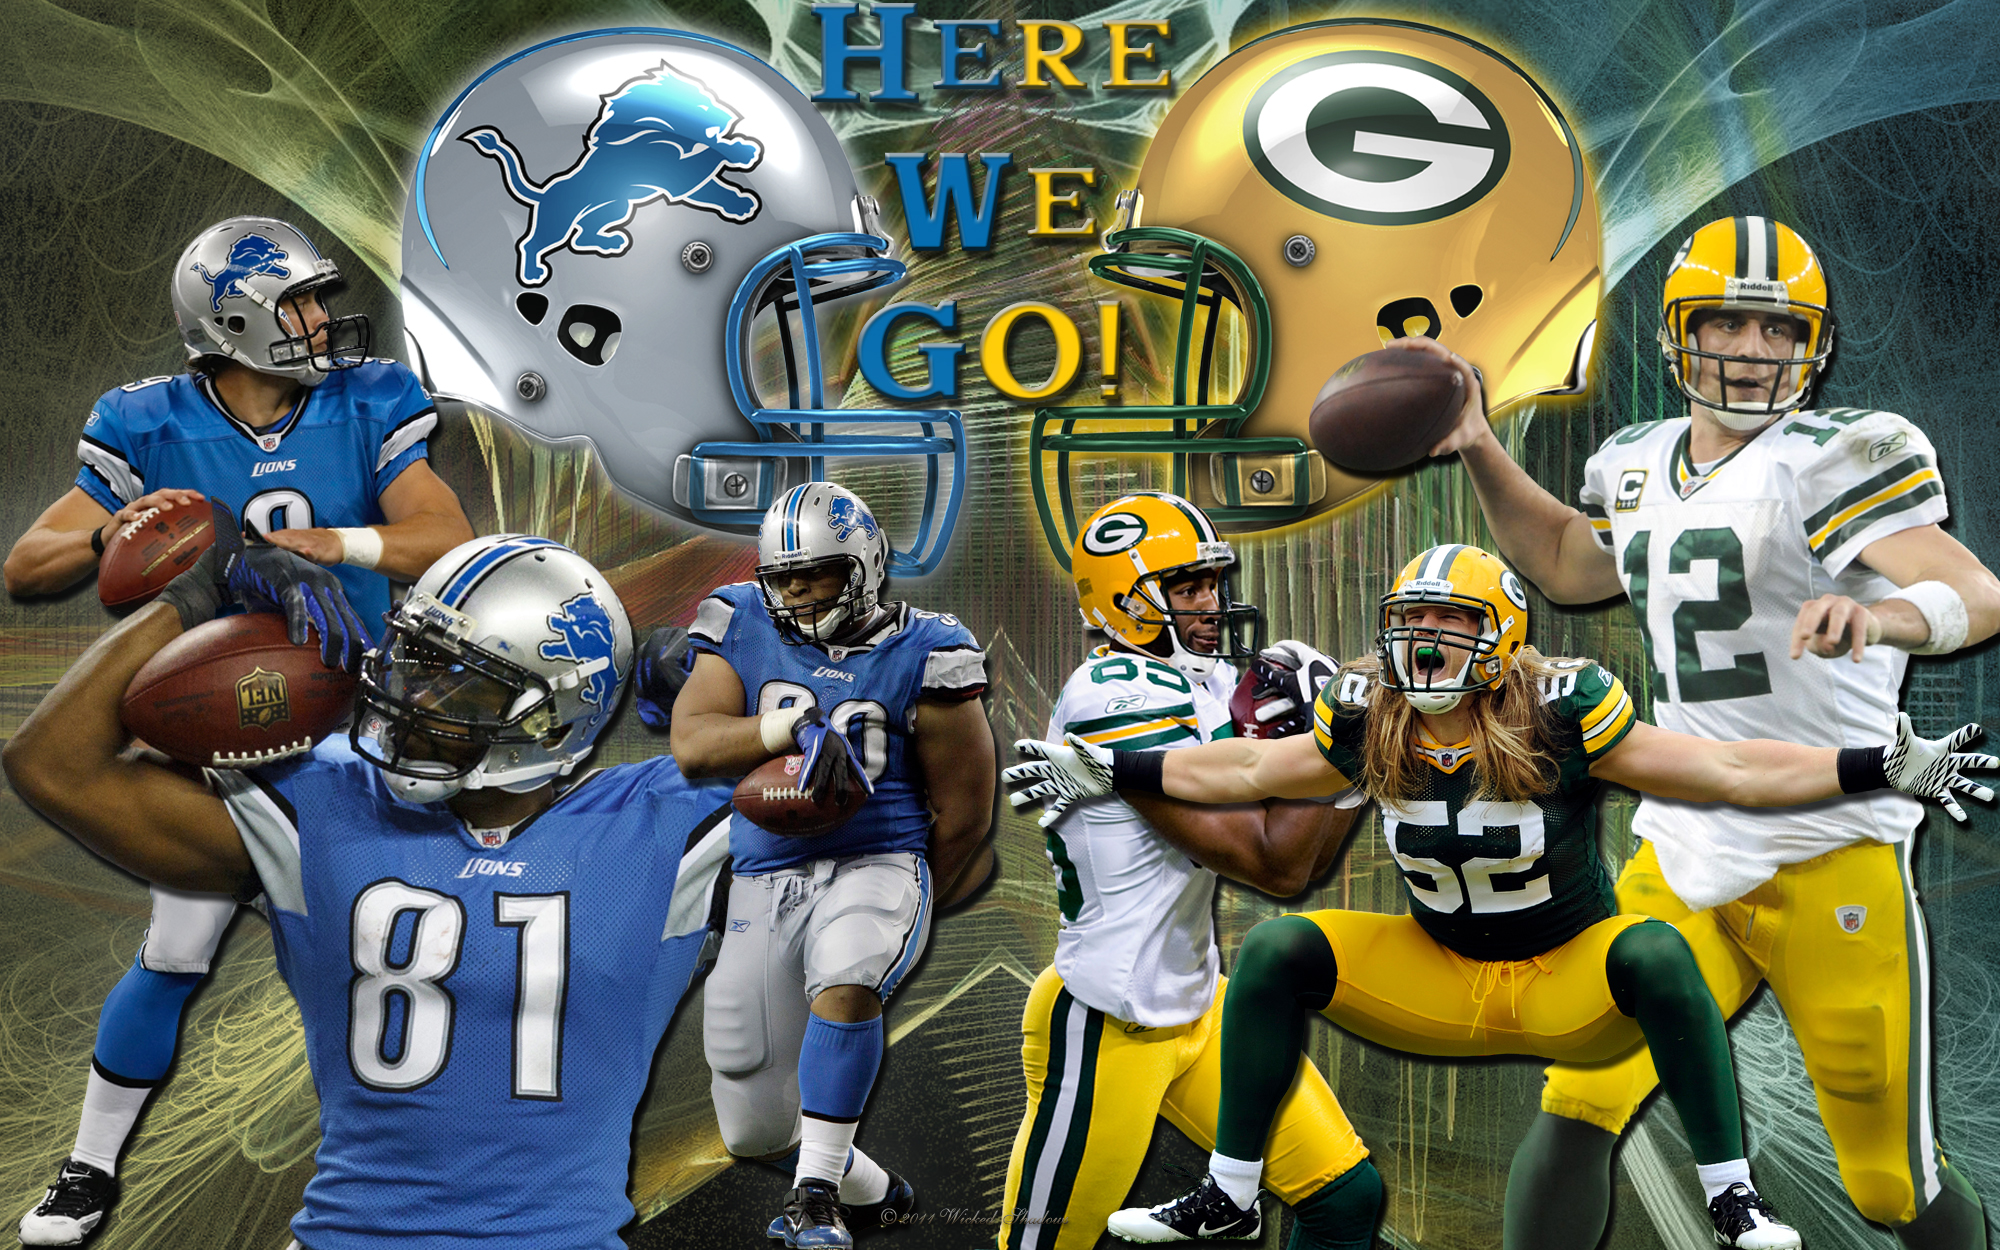 Detroit Lions Vs Green Bay Packers Here We GO Wallpaper